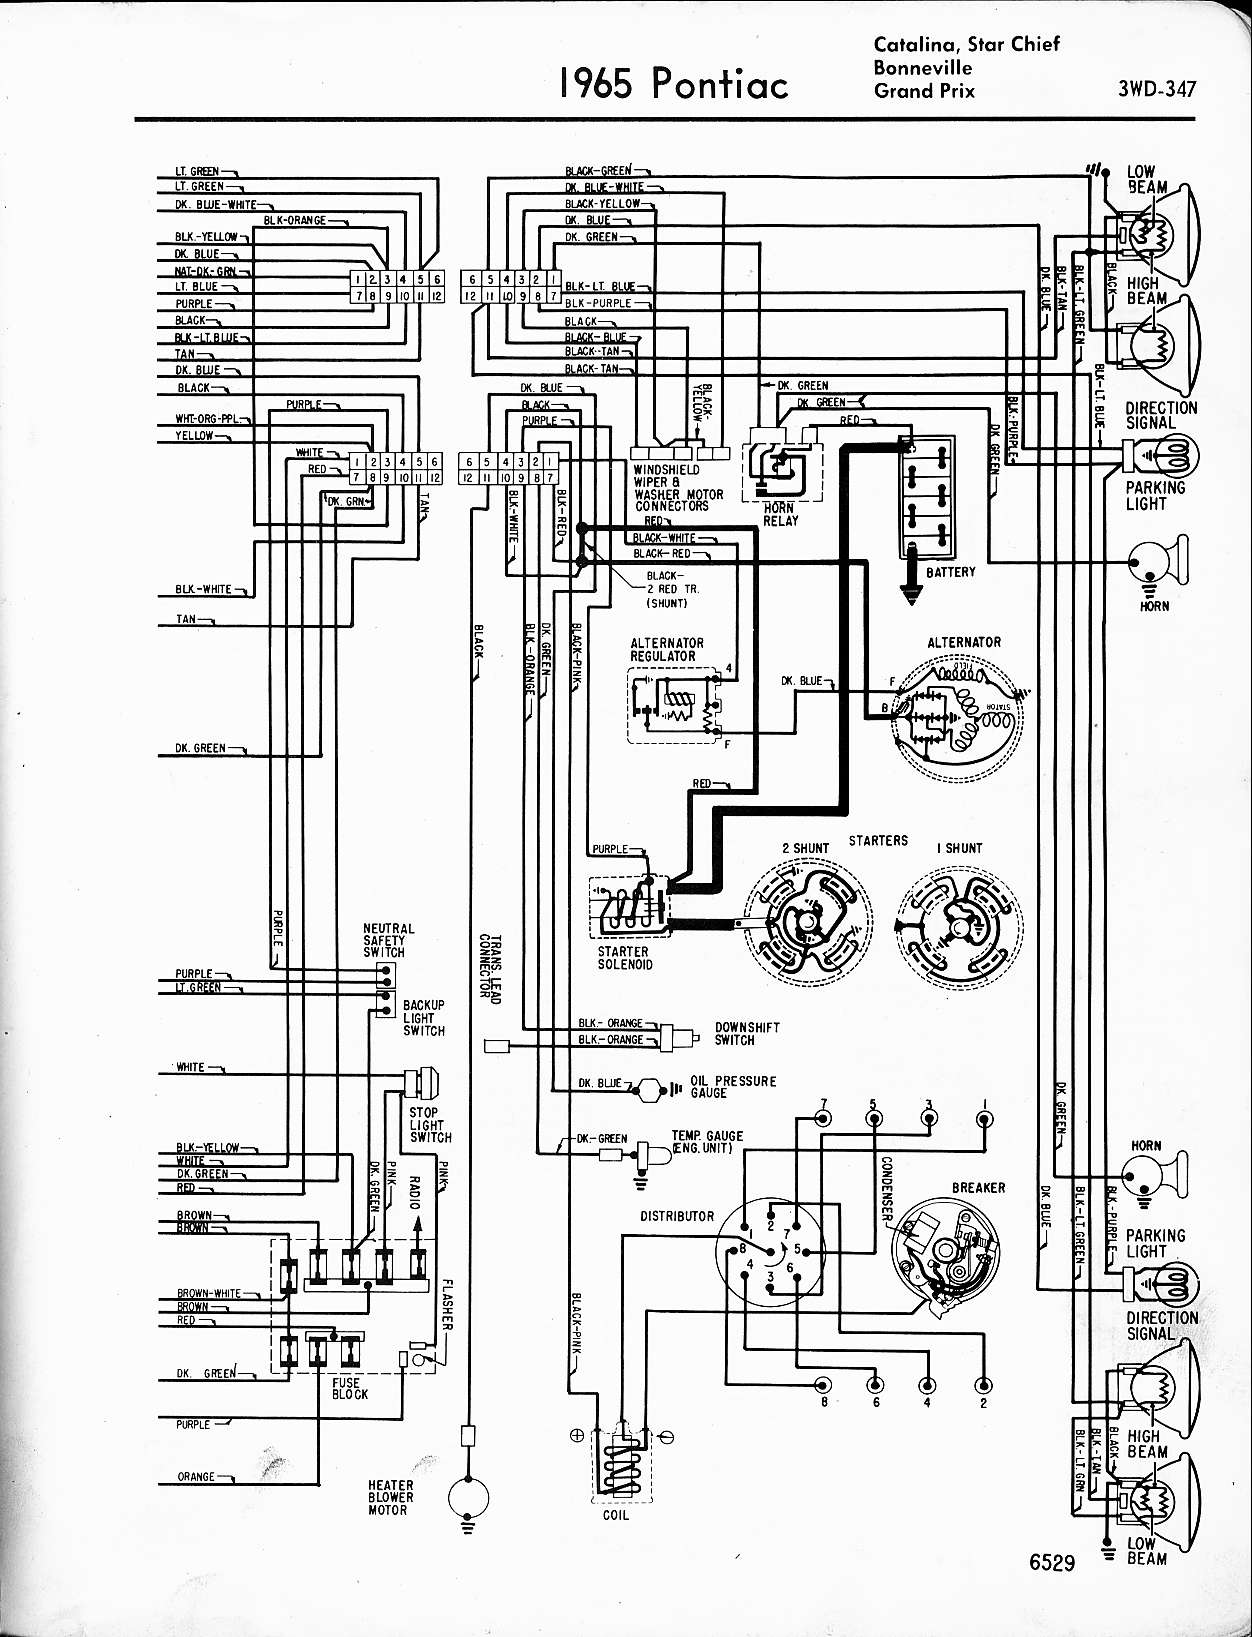 Pontiac Catalina Wiring Diagram